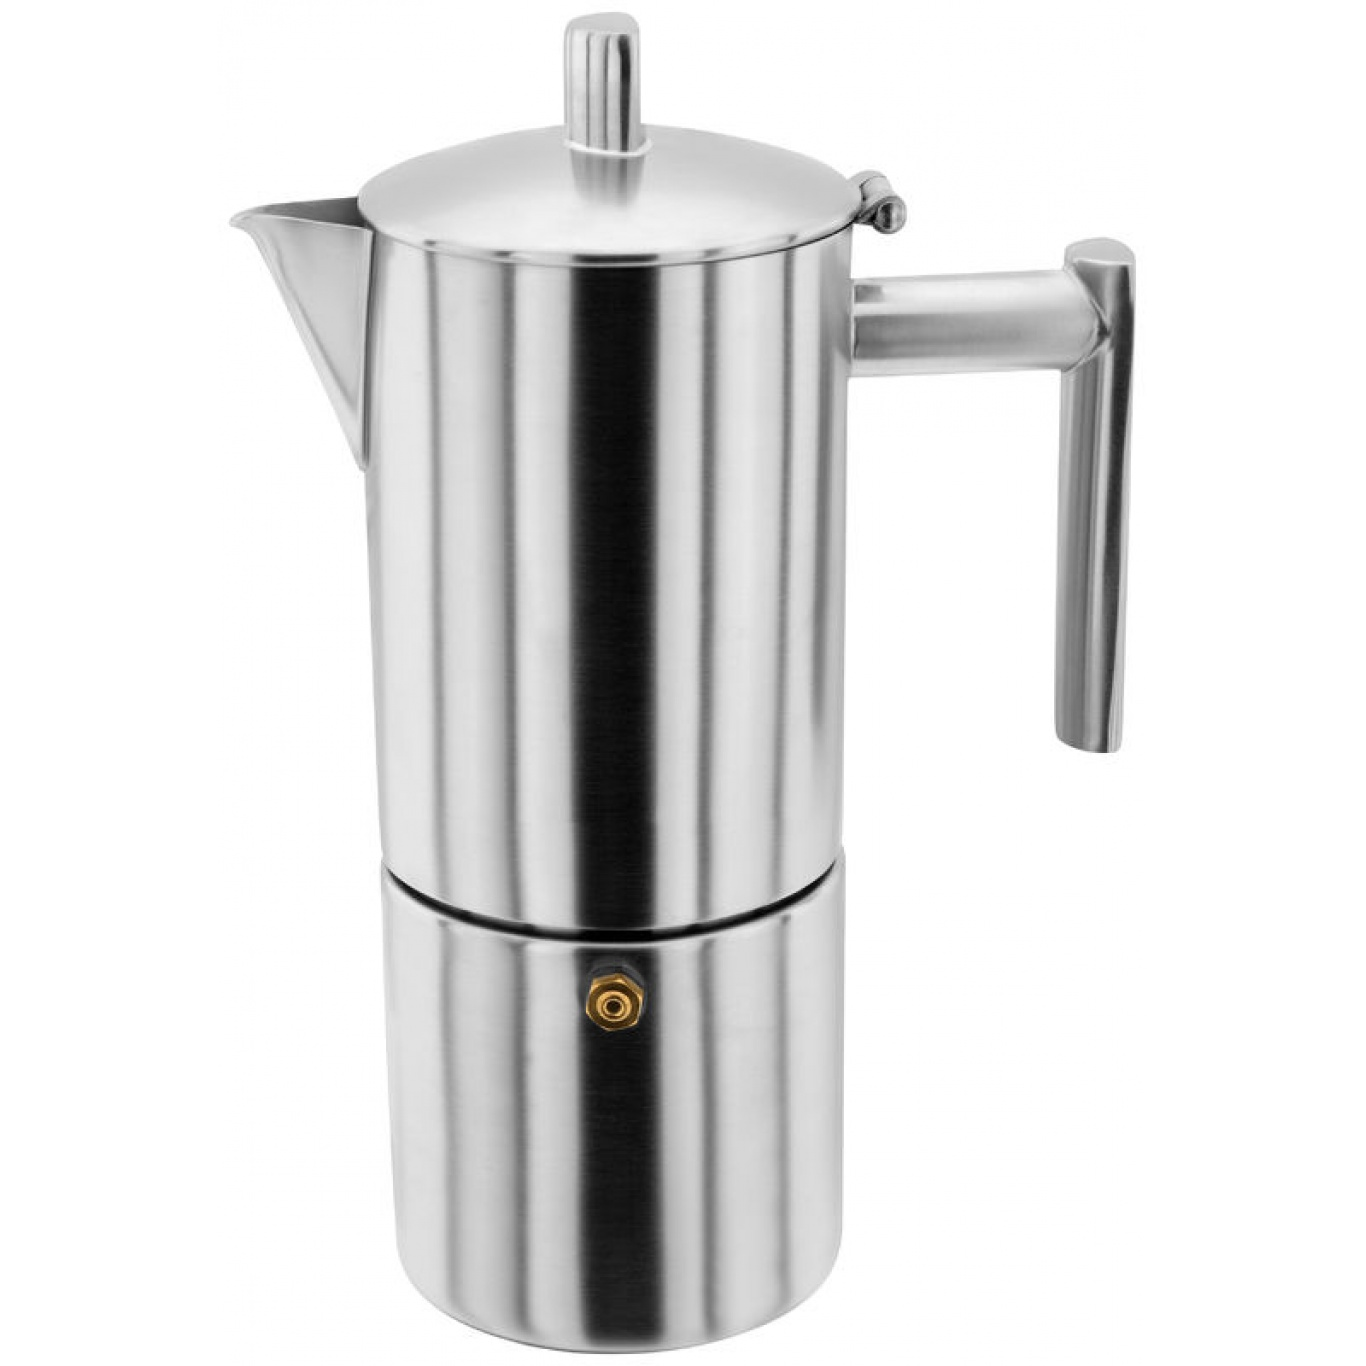 Image of Stellar 4 Cup Espresso Maker